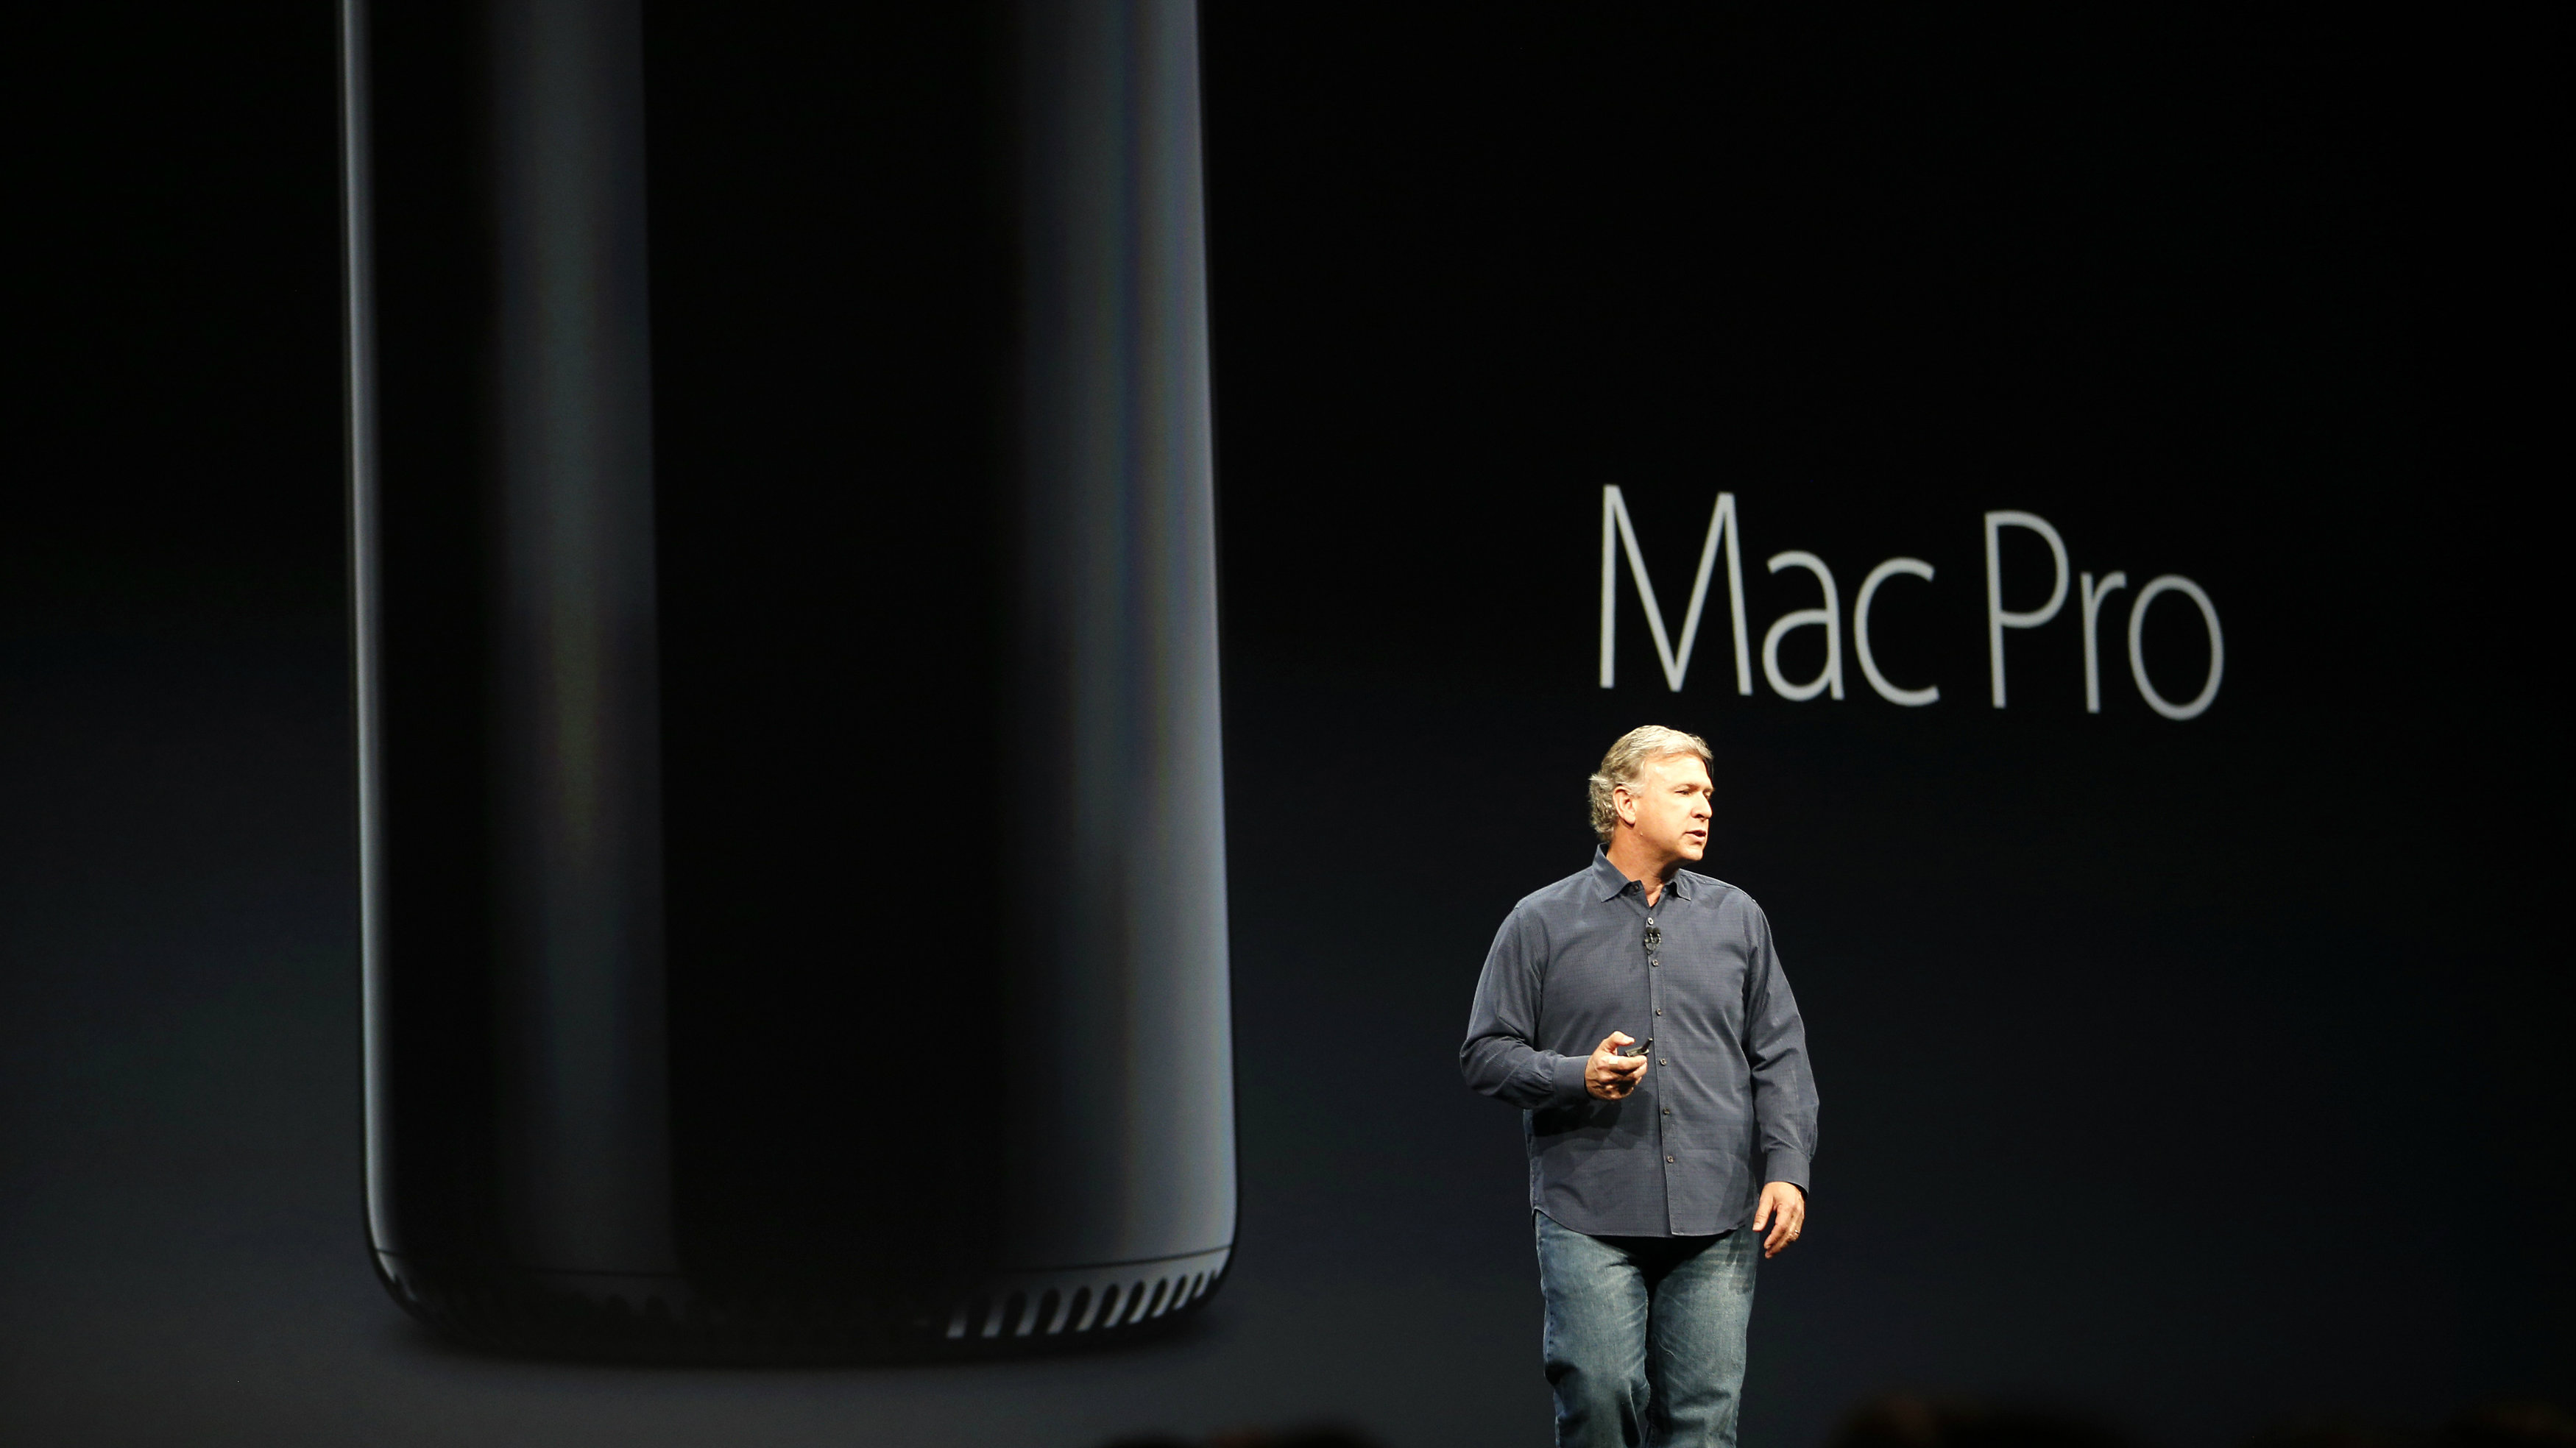 Phil Schiller, senior vice president of worldwide marketing at Apple Inc., introduces the new Mac Pro during Apple Worldwide Developers Conference (WWDC) 2013 in San Francisco, California June 10, 2013. REUTERS/Stephen Lam (UNITED STATES - Tags: BUSINESS SCIENCE TECHNOLOGY)